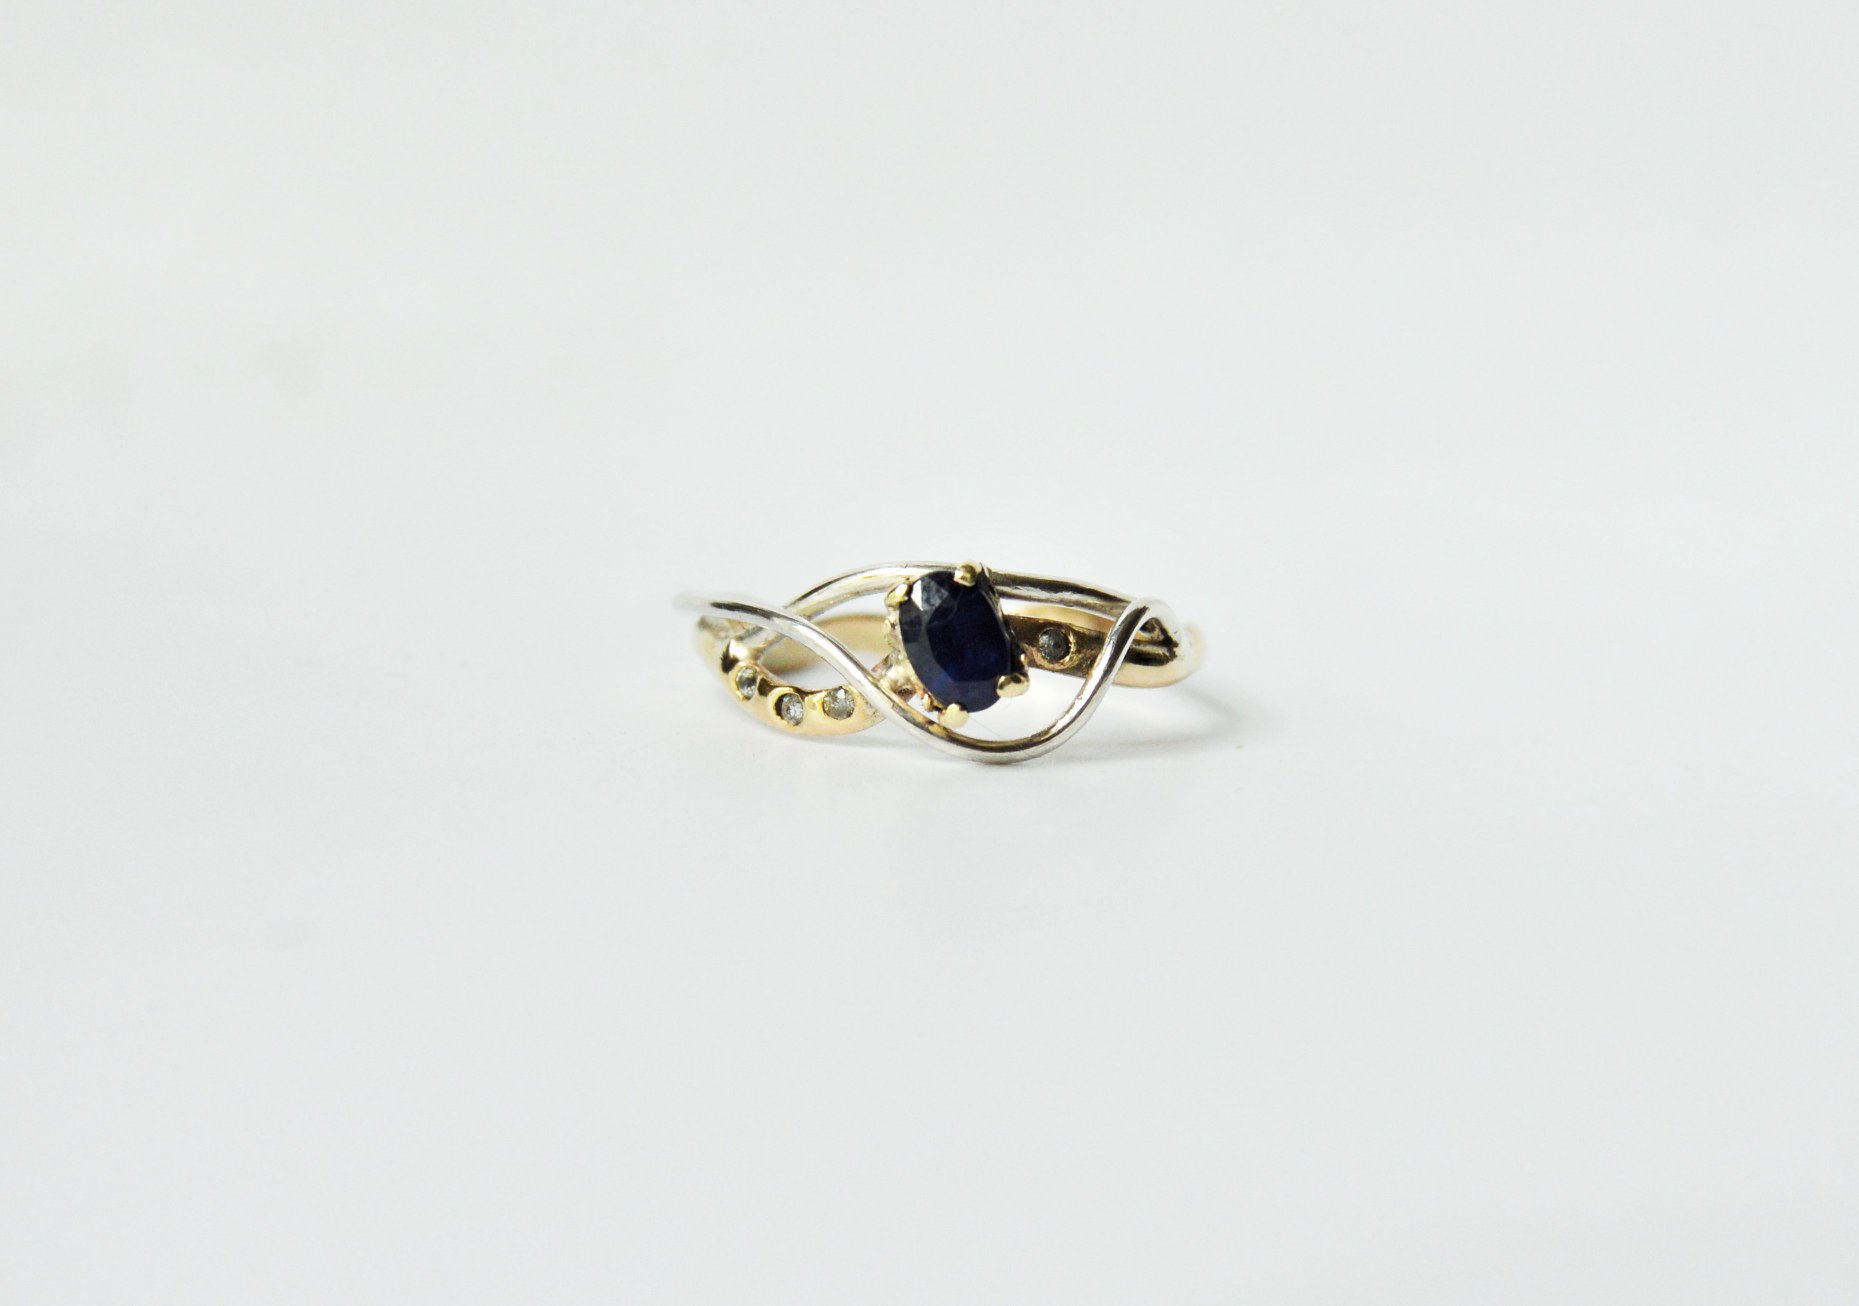 Ring commission